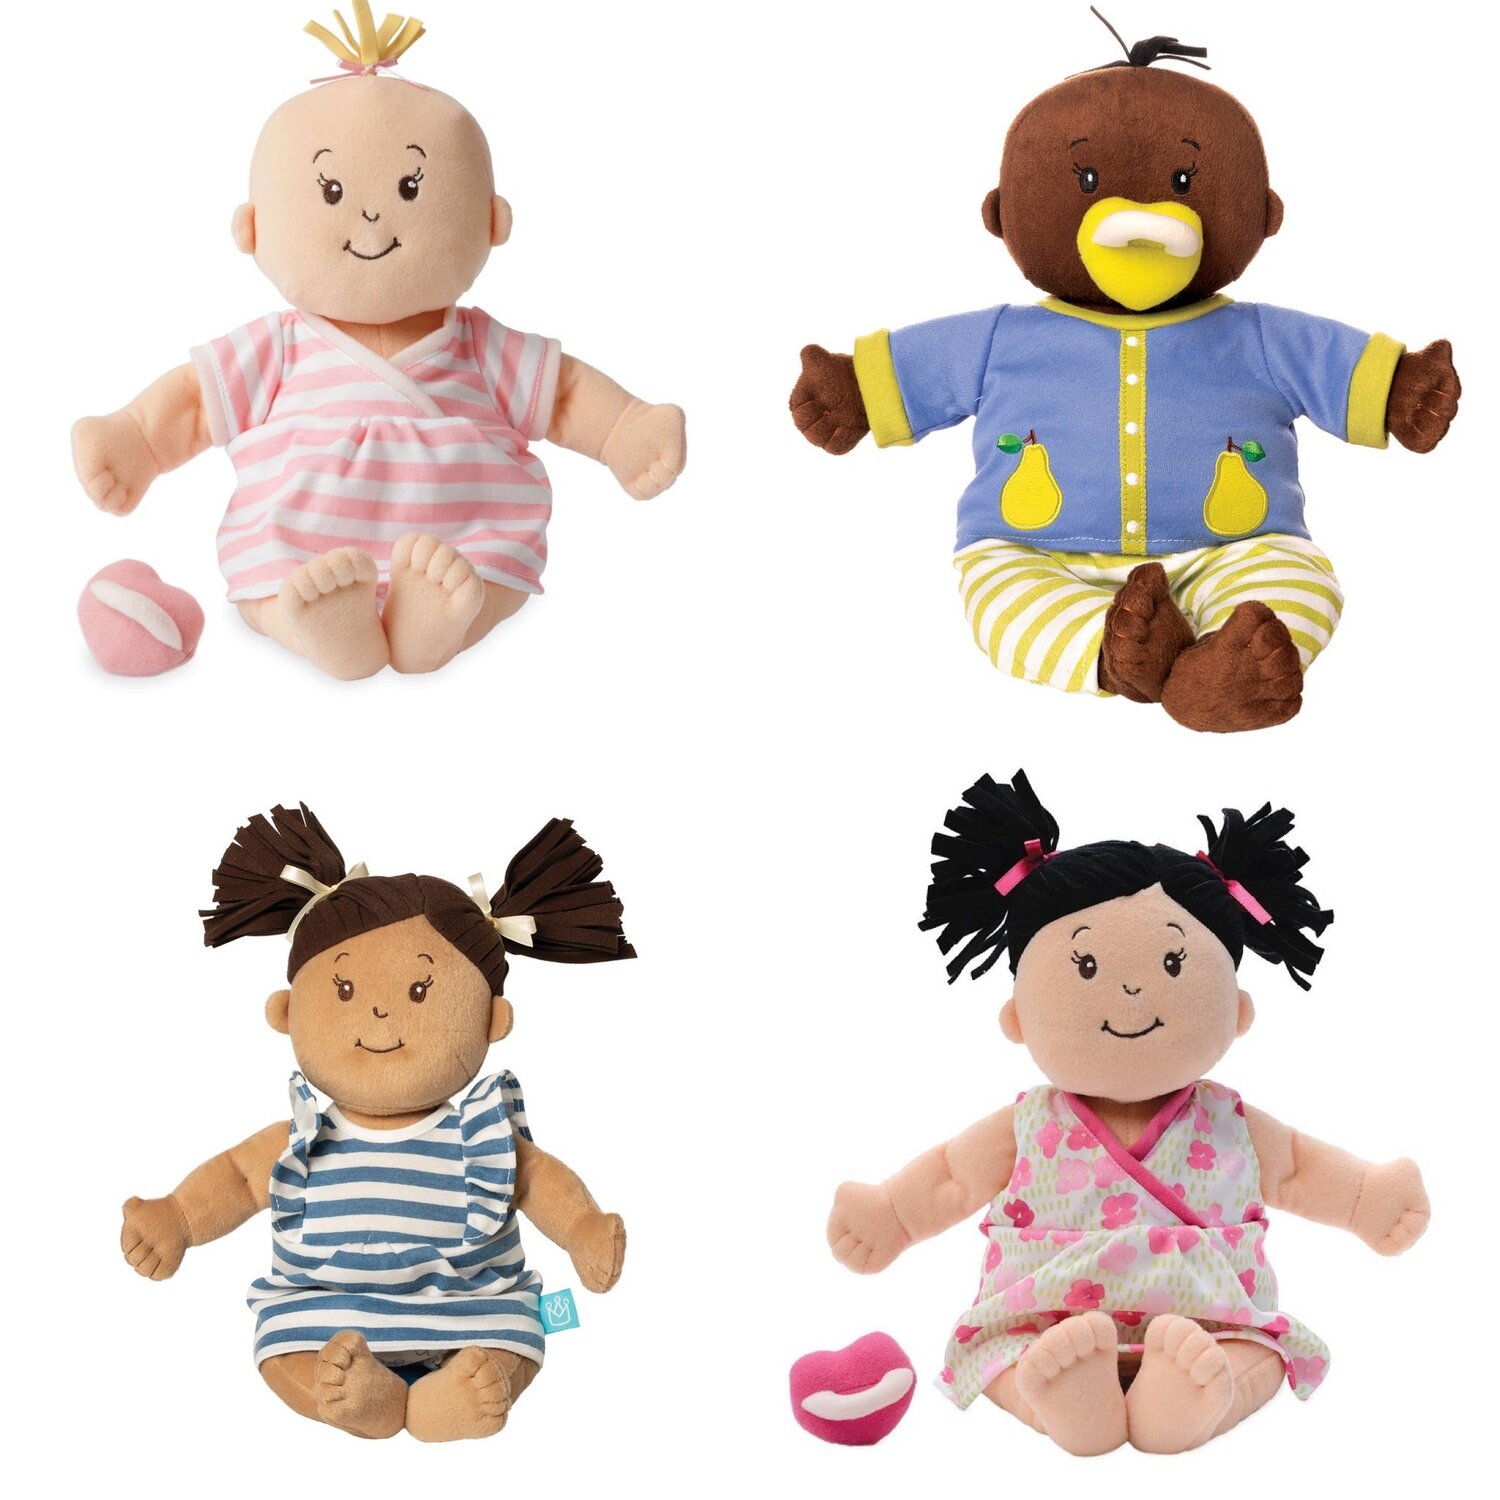 """[Image Description: Four soft baby dolls. Top left: A peach colored doll with a blonde sprout of hair on the top of their head. They are wearing a pink and white striped dress. There is a pink heart-shaped pacifier next to them. Top Right: A brown doll with a sprout of dark brown hair on the top of their head. They are wearing a blue top with pear's on it and yellow and white striped pants. They have a yellow heart-shaped pacifier in their mouth. Bottom Left: A tan doll with brown pig tails. They are wearing a blue and white striped dress. Bottom Right: A peach colored doll with back pig tails. They are wearing a pink floral dress. Next to them is a pink heart-shaped pacifier"""".]"""